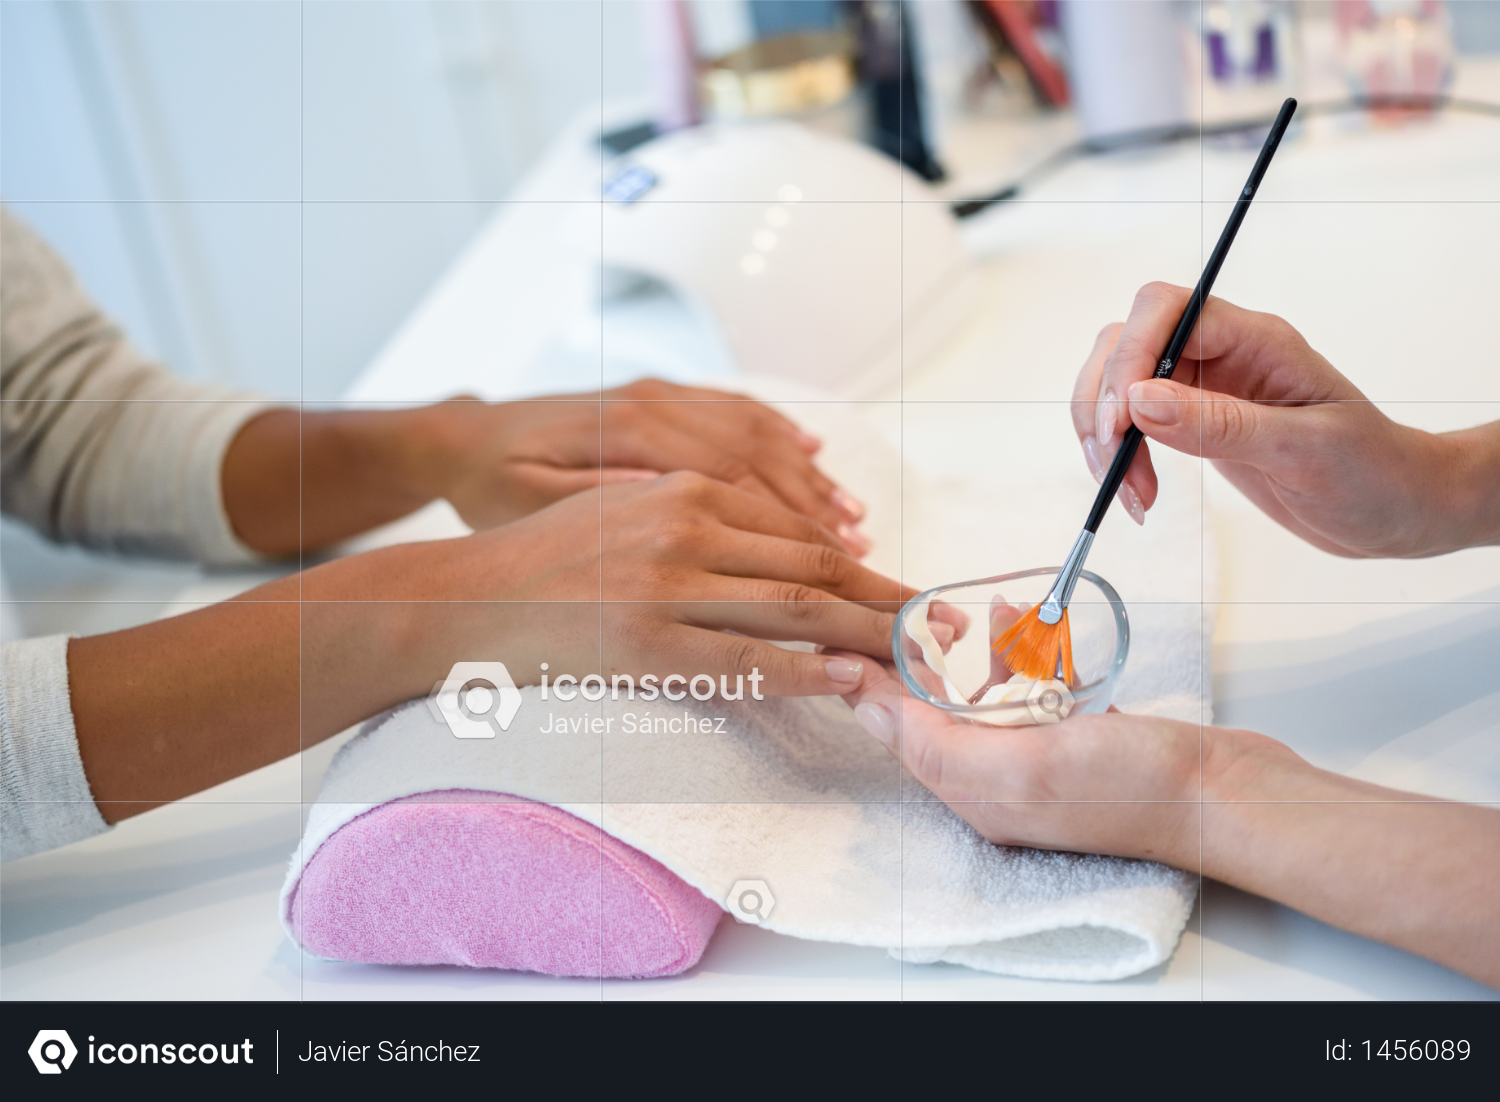 Close-up of beautician applying cream on woman's hand using brush. Handcare, taking care of hands, cosmetics concept. Photo